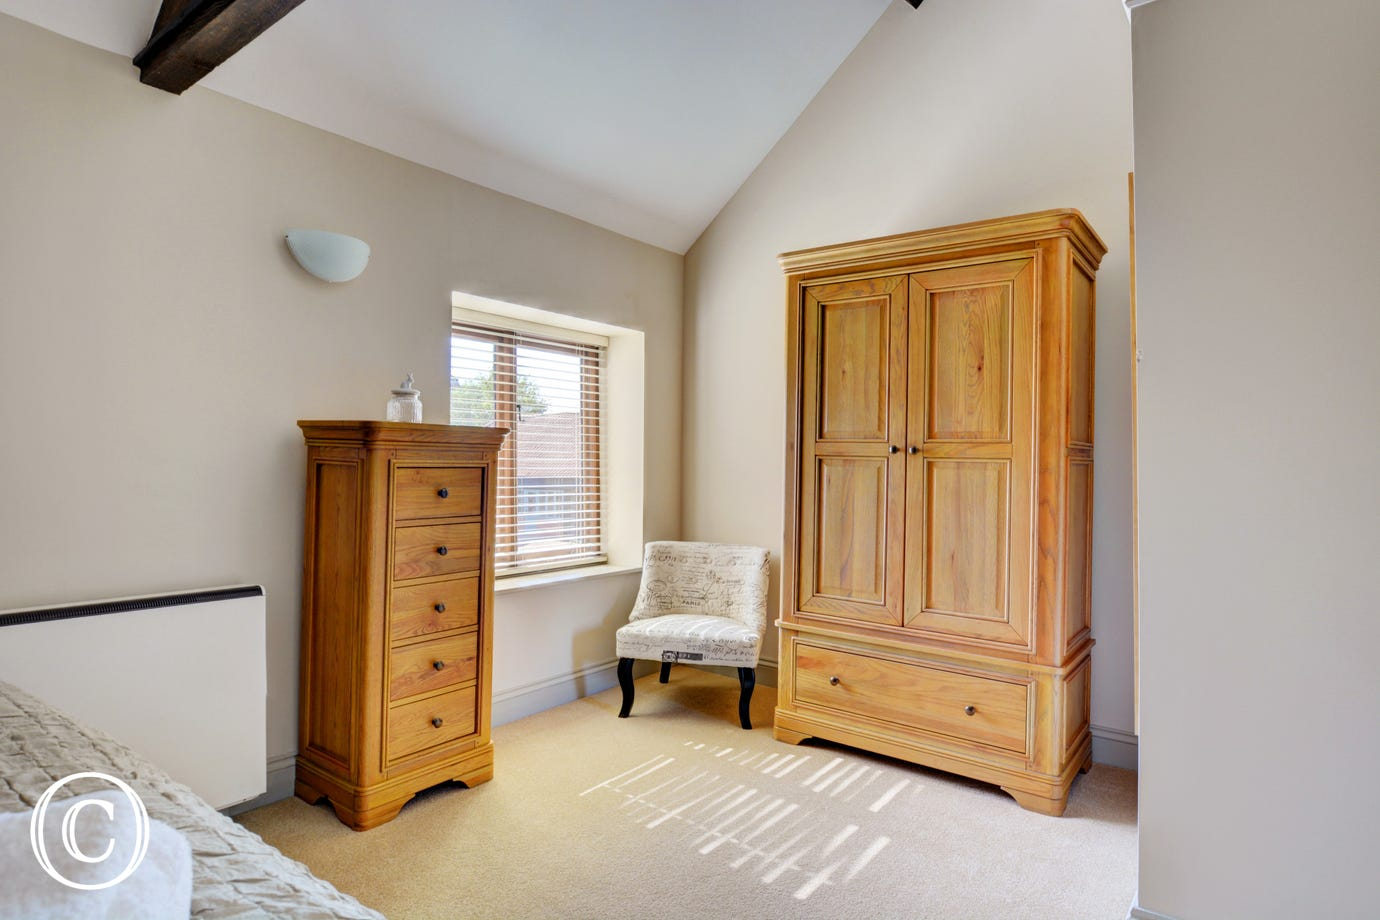 Storage and seating in bedroom two